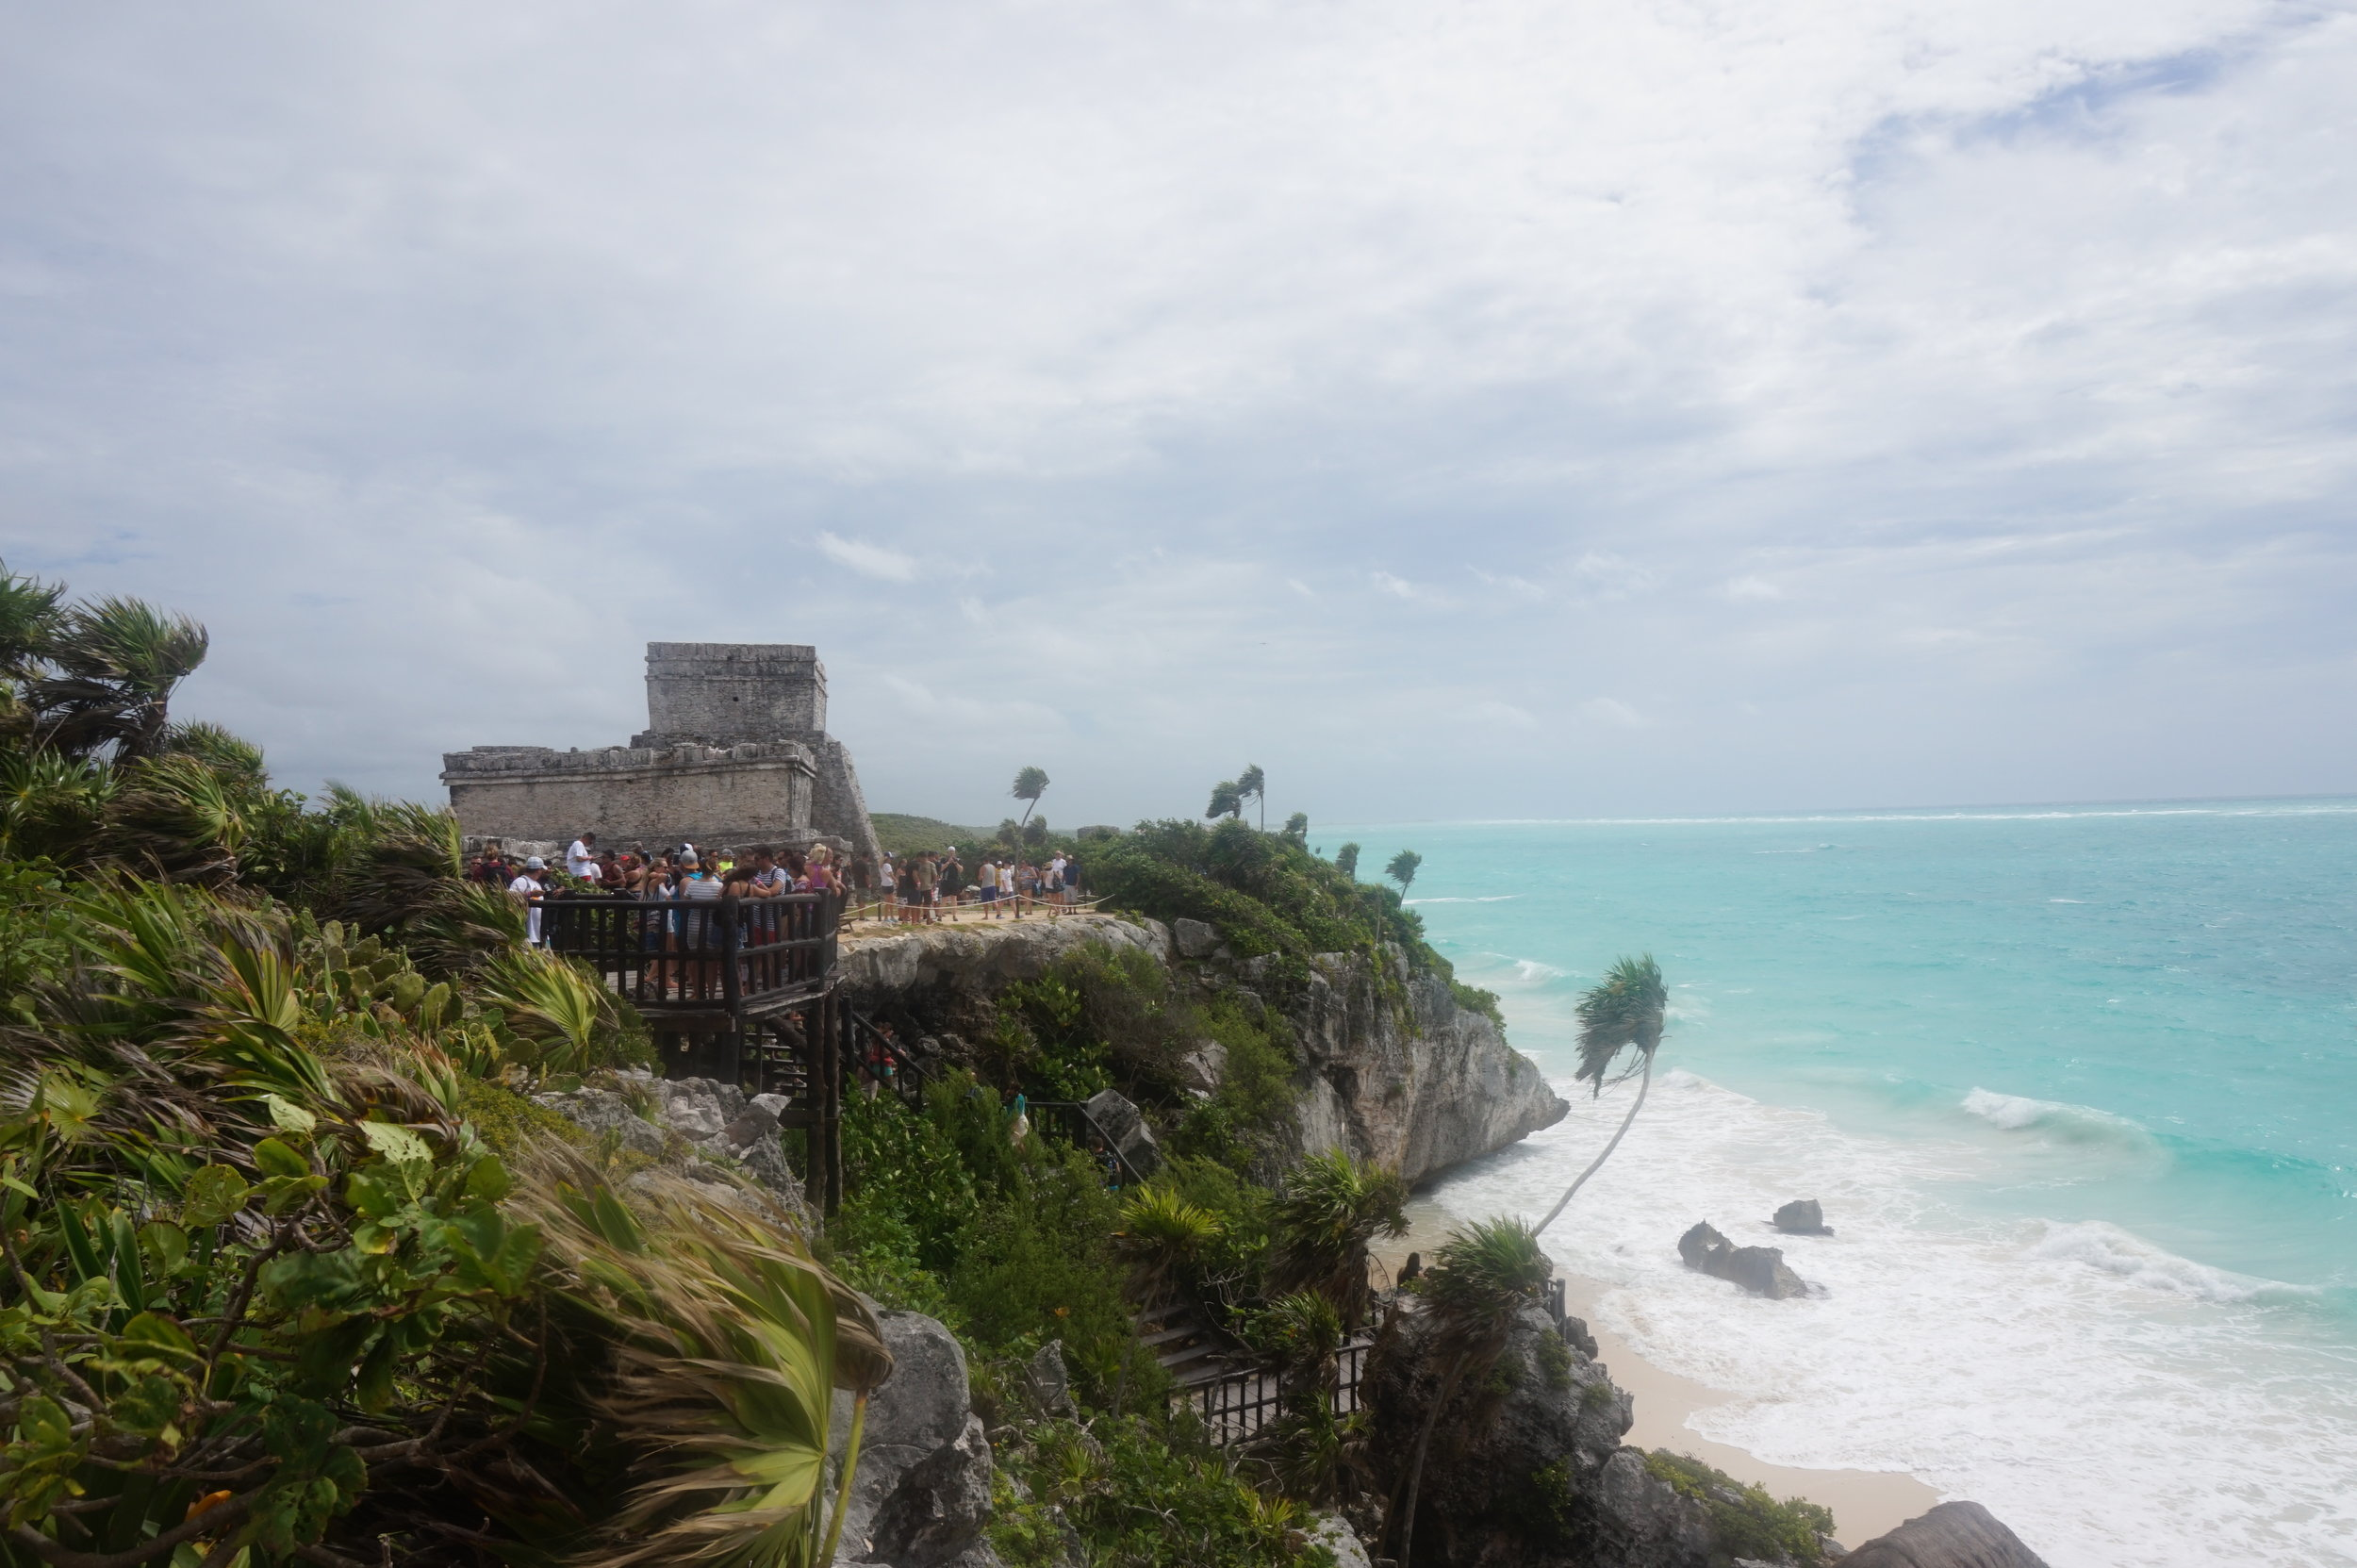 mexico-tulum-ruins-beach-2